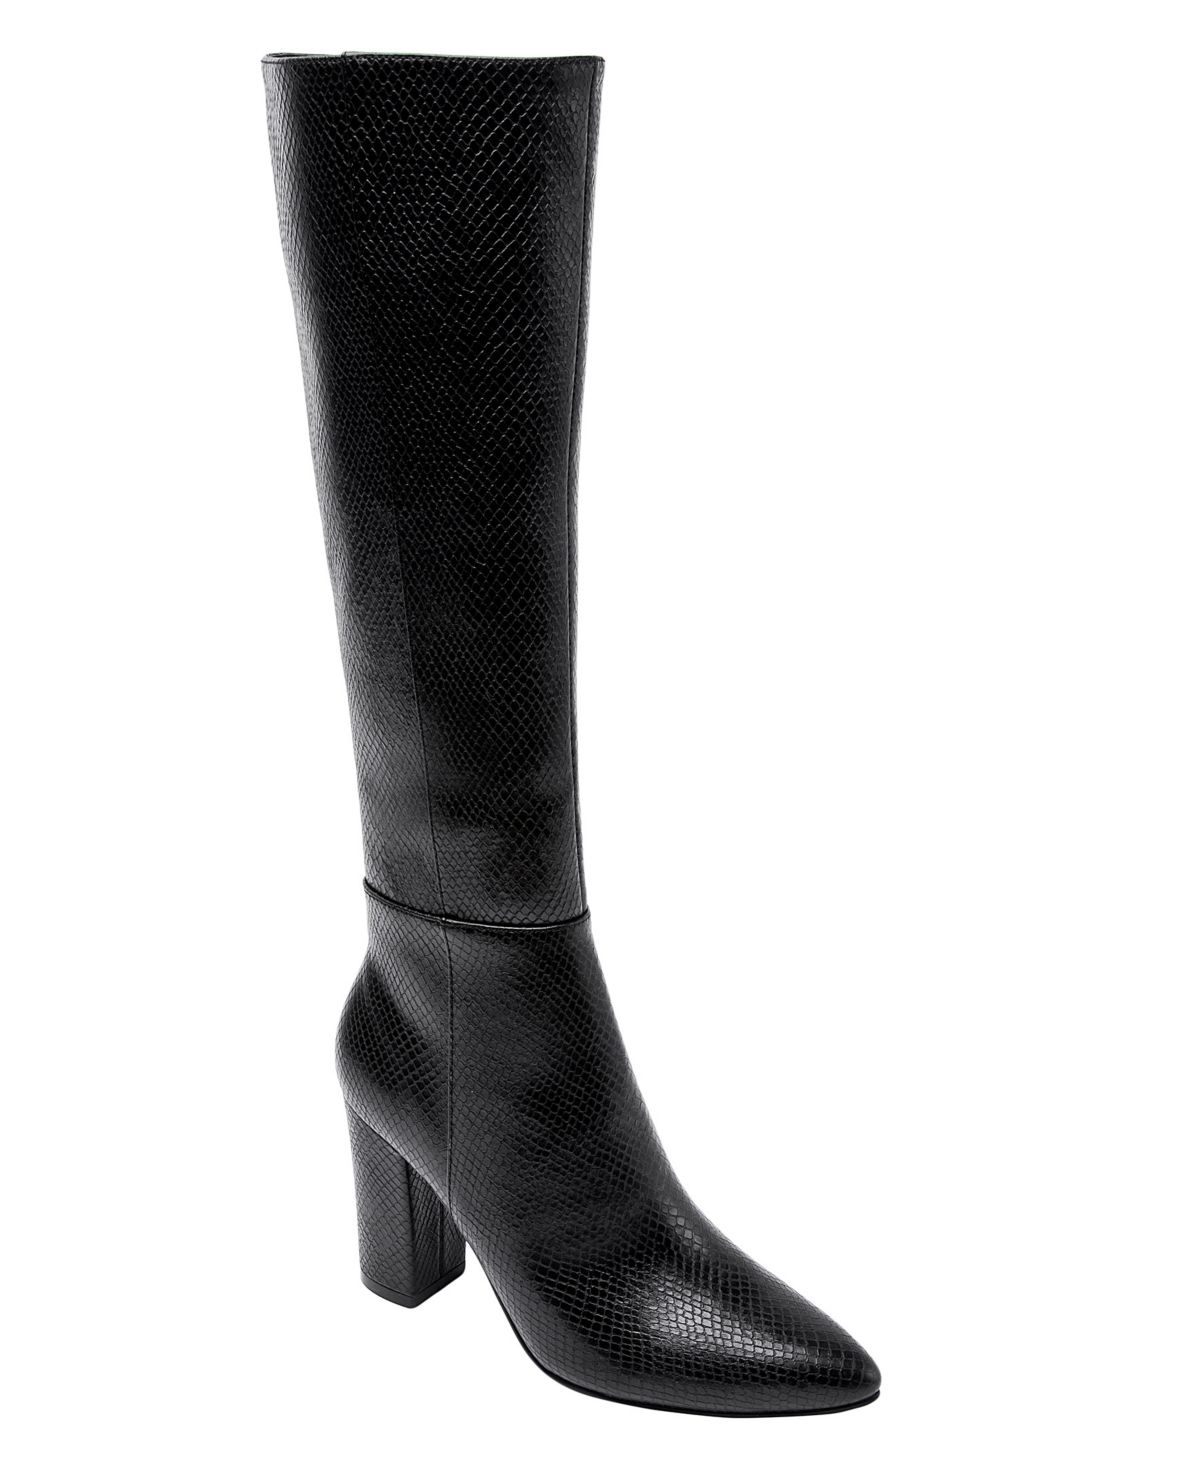 Jane And The Shoe Women S Fay Block Heel Tall Dress Boots Reviews Boots Shoes Macy S In 2021 Pointy Boots Dress With Boots Comfortable Block Heels [ 1467 x 1200 Pixel ]